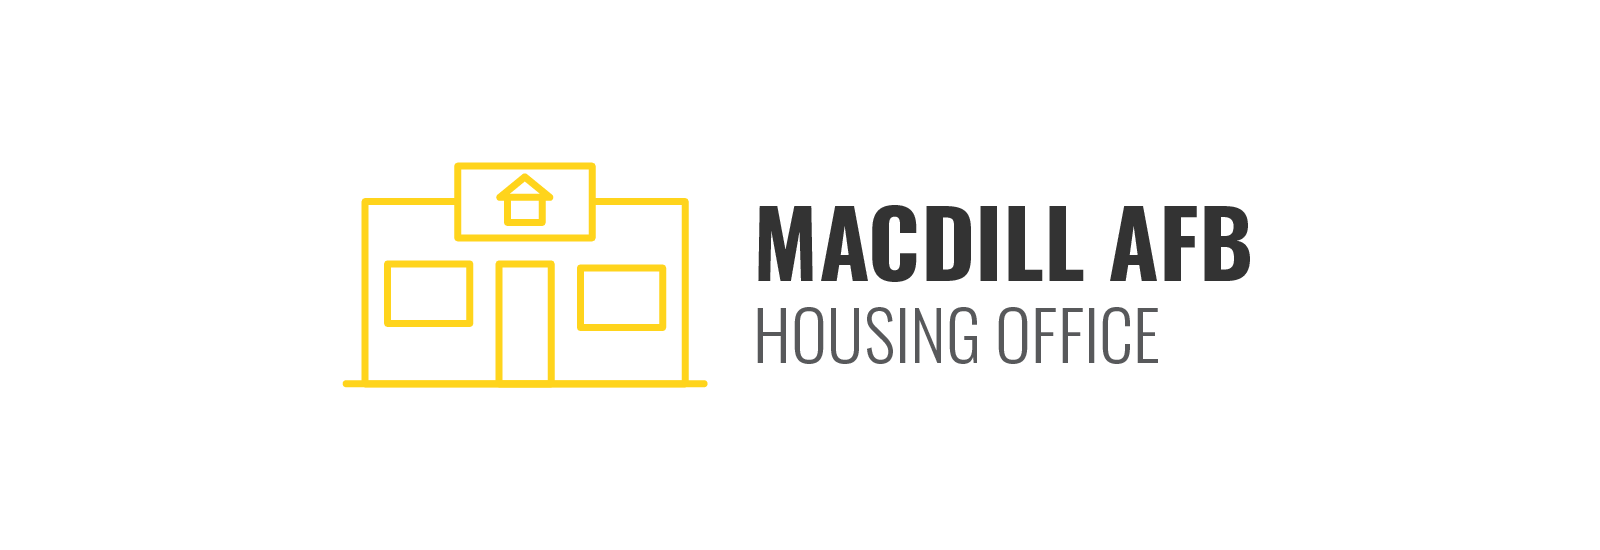 MacDill AFB Housing Office